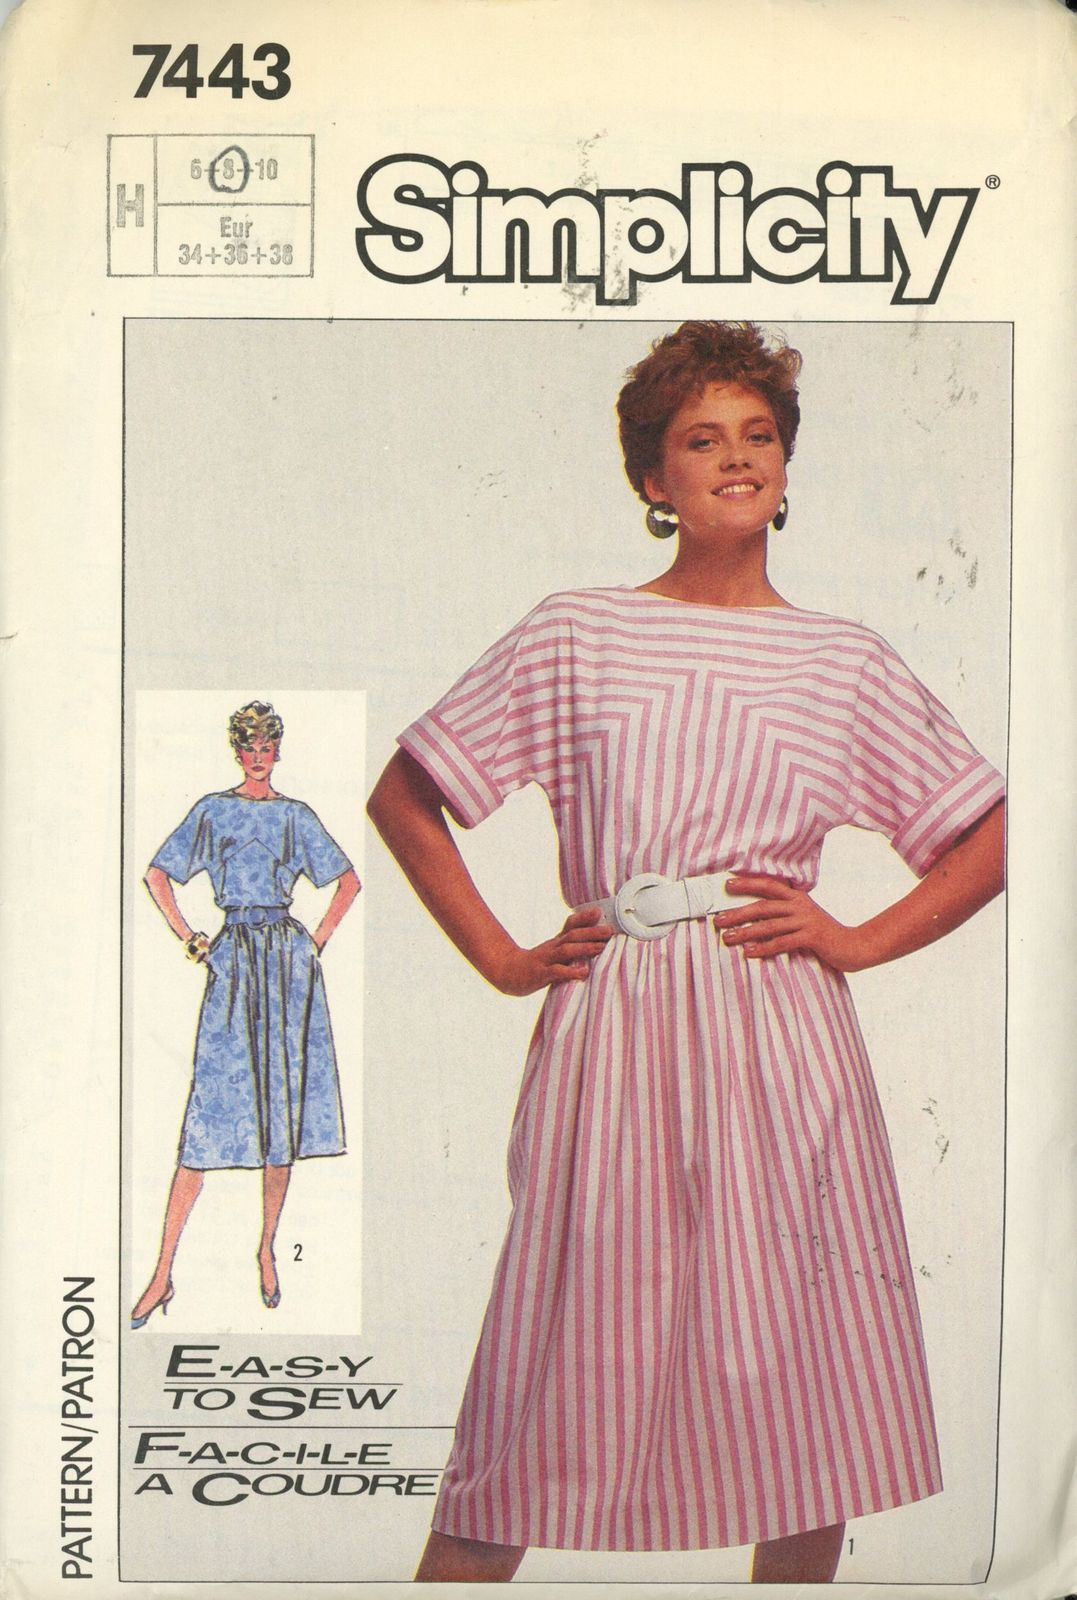 Simplicity Easy To Sew Sewing Pattern: 12 listings